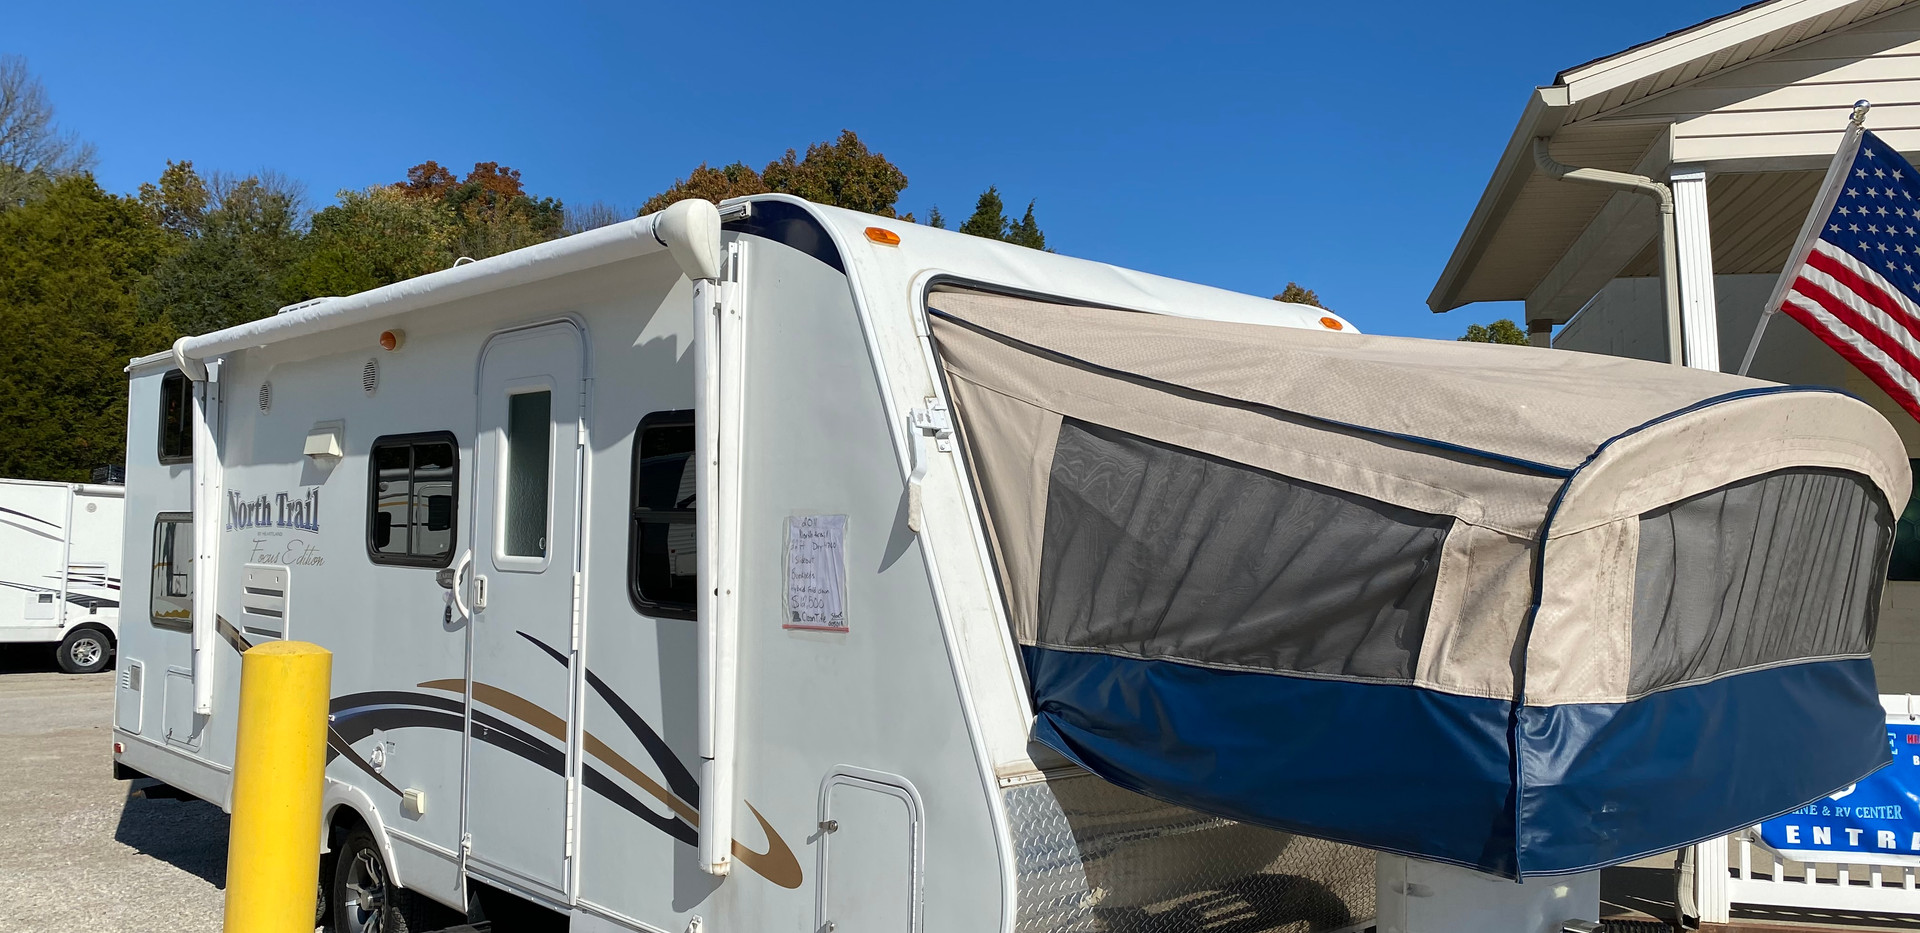 2012 Heartland North Trail. Model number is T-22. Camper is 22 feet long, dry weight is 4700 pounds. Has electric awning, canvas is brand new, and manual jacks. Has one slideout and one hybrid fold down end. Inside is in good condition. Has bunk beds in the back. Living room and kitchen in the middle. Couch and dinnette both fold into beds. And then had the hybrid fold down bed in the very front. Canvas is in good shape no holes or tears. Does have a rebuilt title. Priced at $11,500